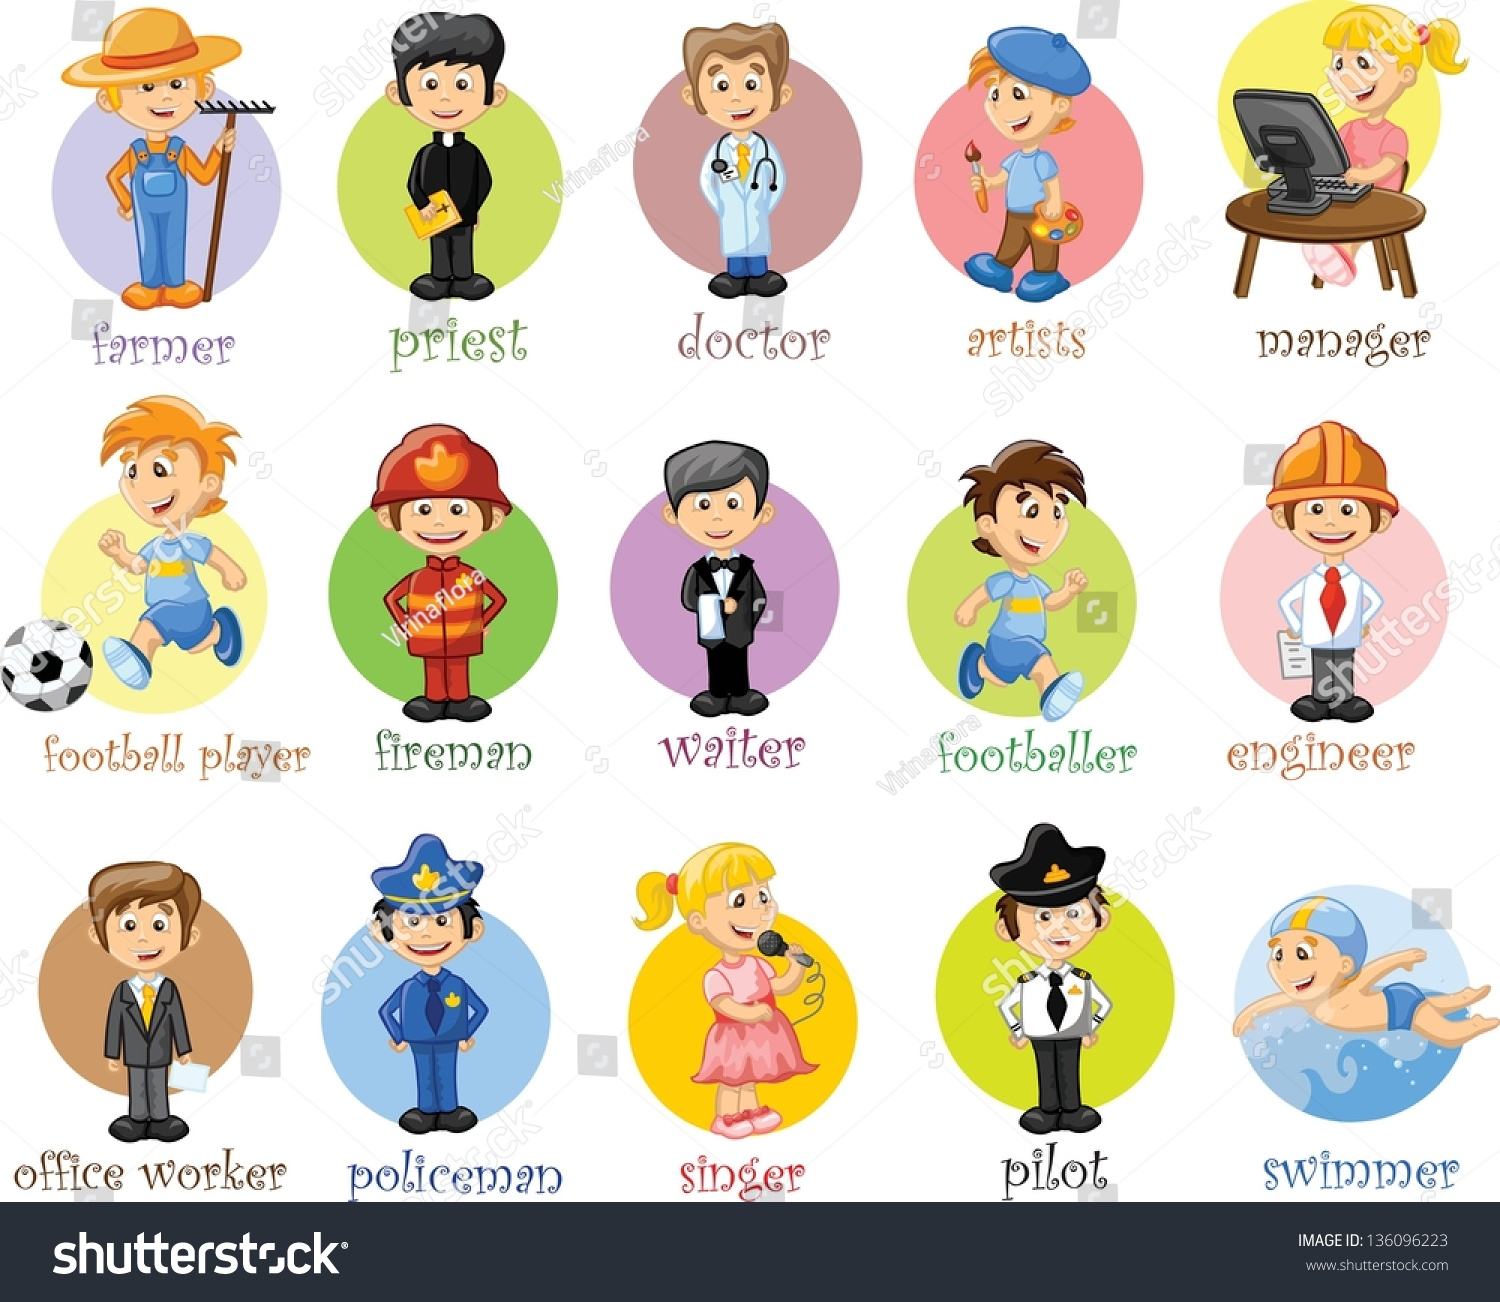 Cartoon Characters Jobs : Cartoon characters different professions stock vector